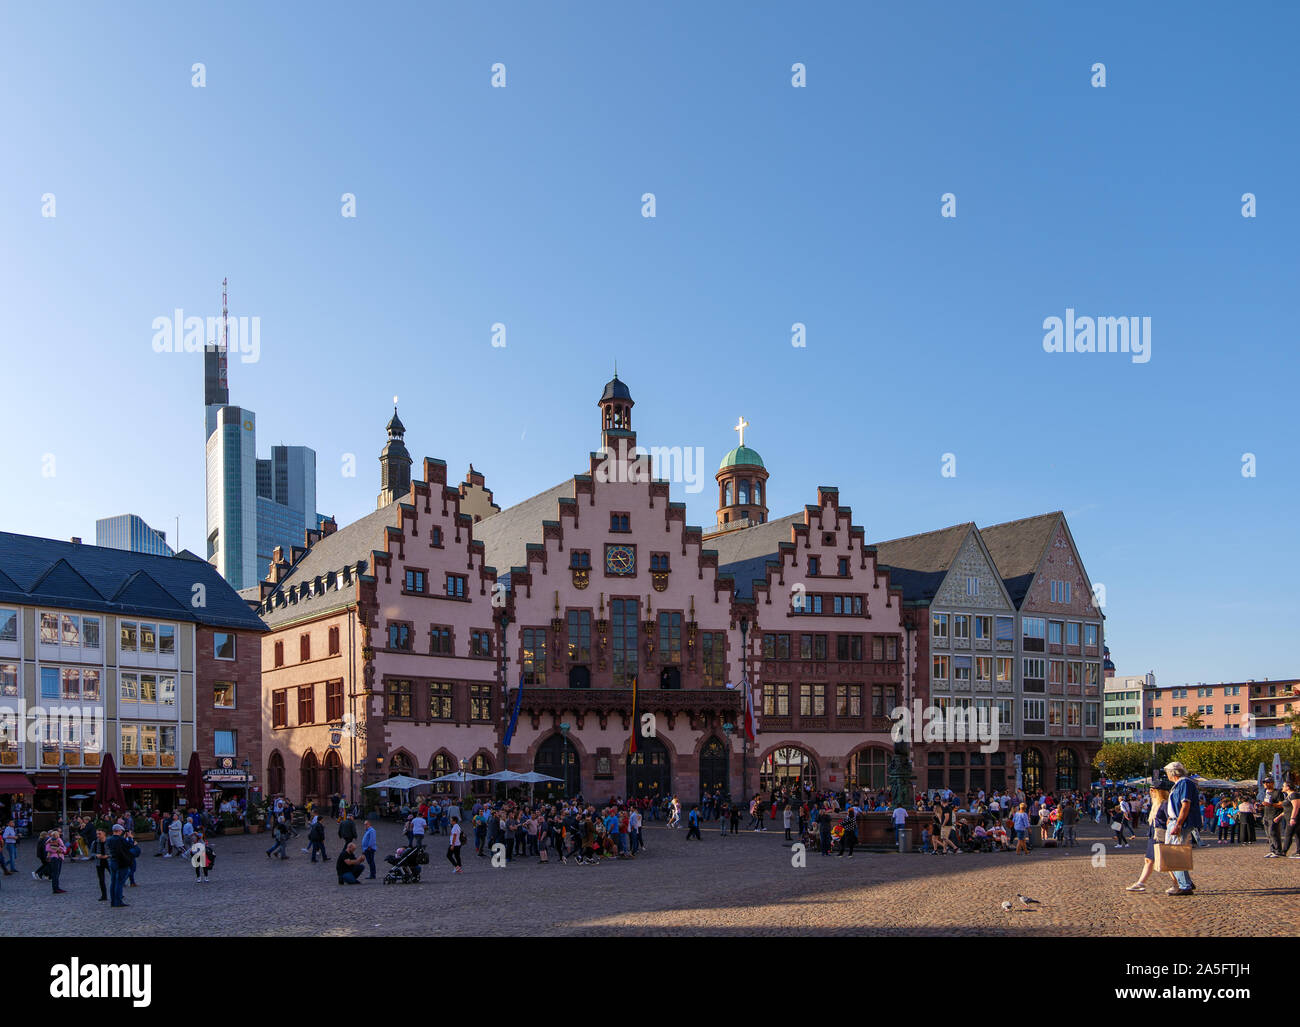 Outdoor sunny view of old town at Römerplatz, historical market square, surrounded with Römerberg, timber medieval German house, and city hall. Stock Photo